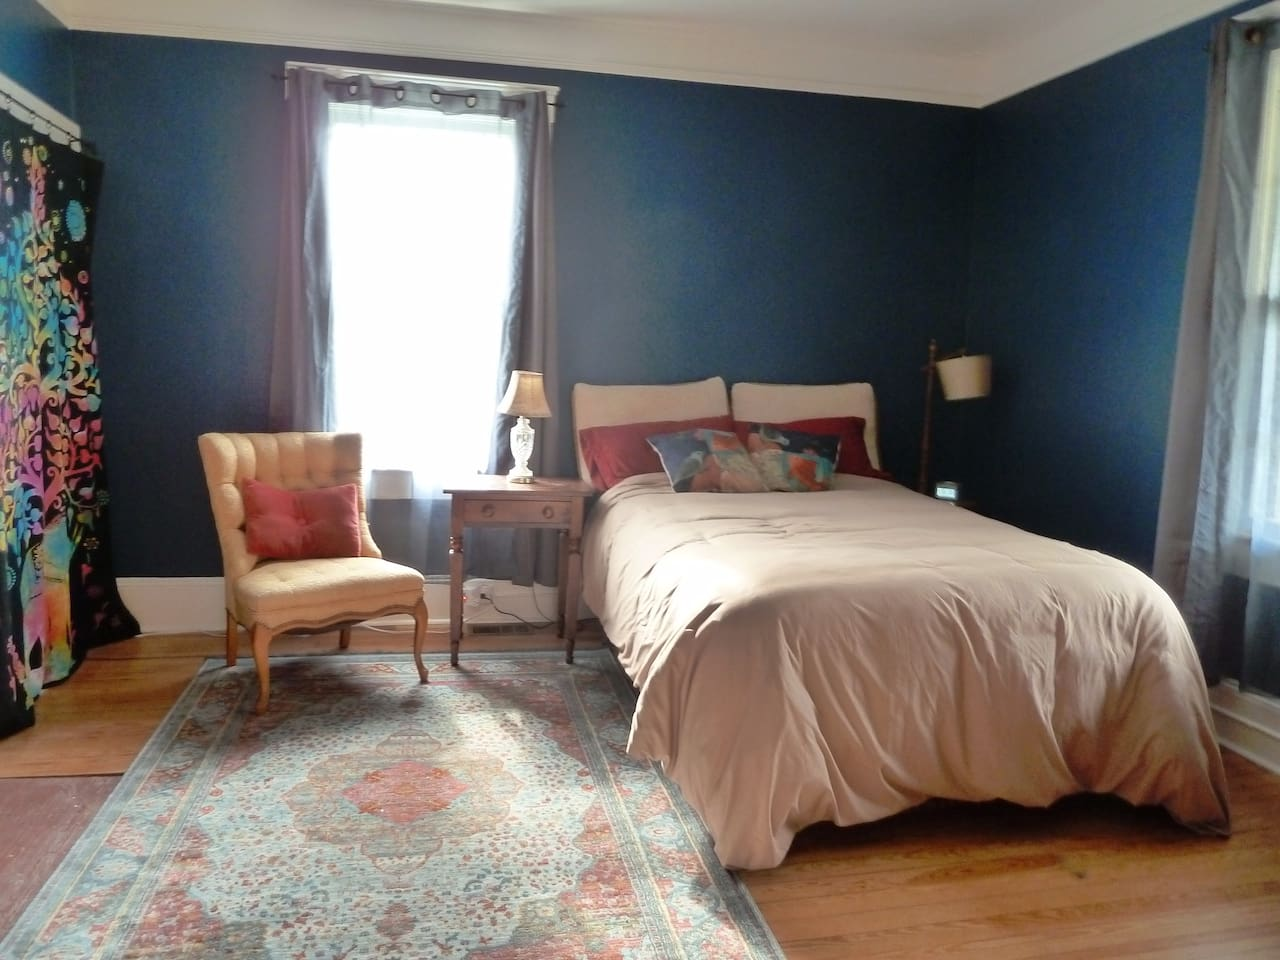 Spacious and comfortable bedroom.  Relaxing deep blue walls.